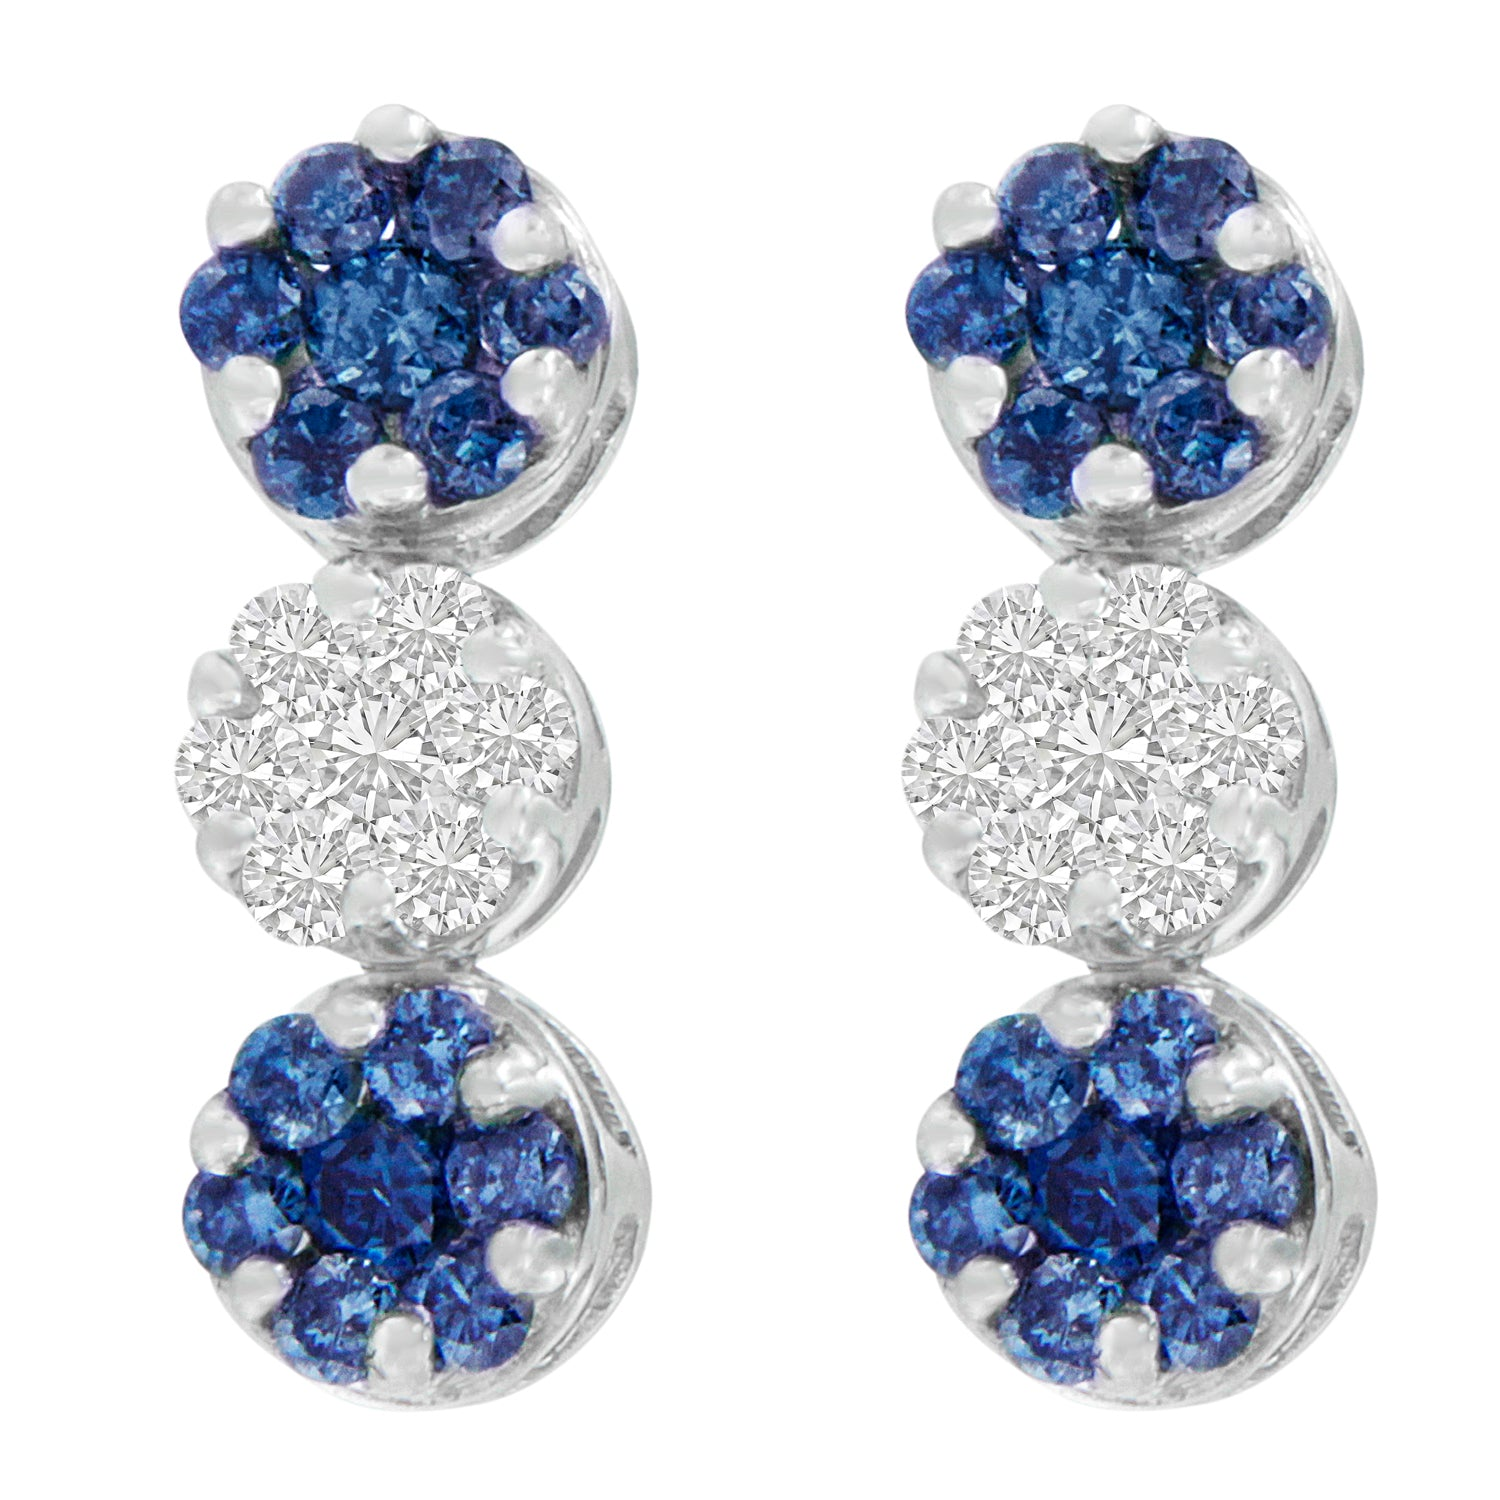 White Gold and Blue-Cut Diamond Earrings